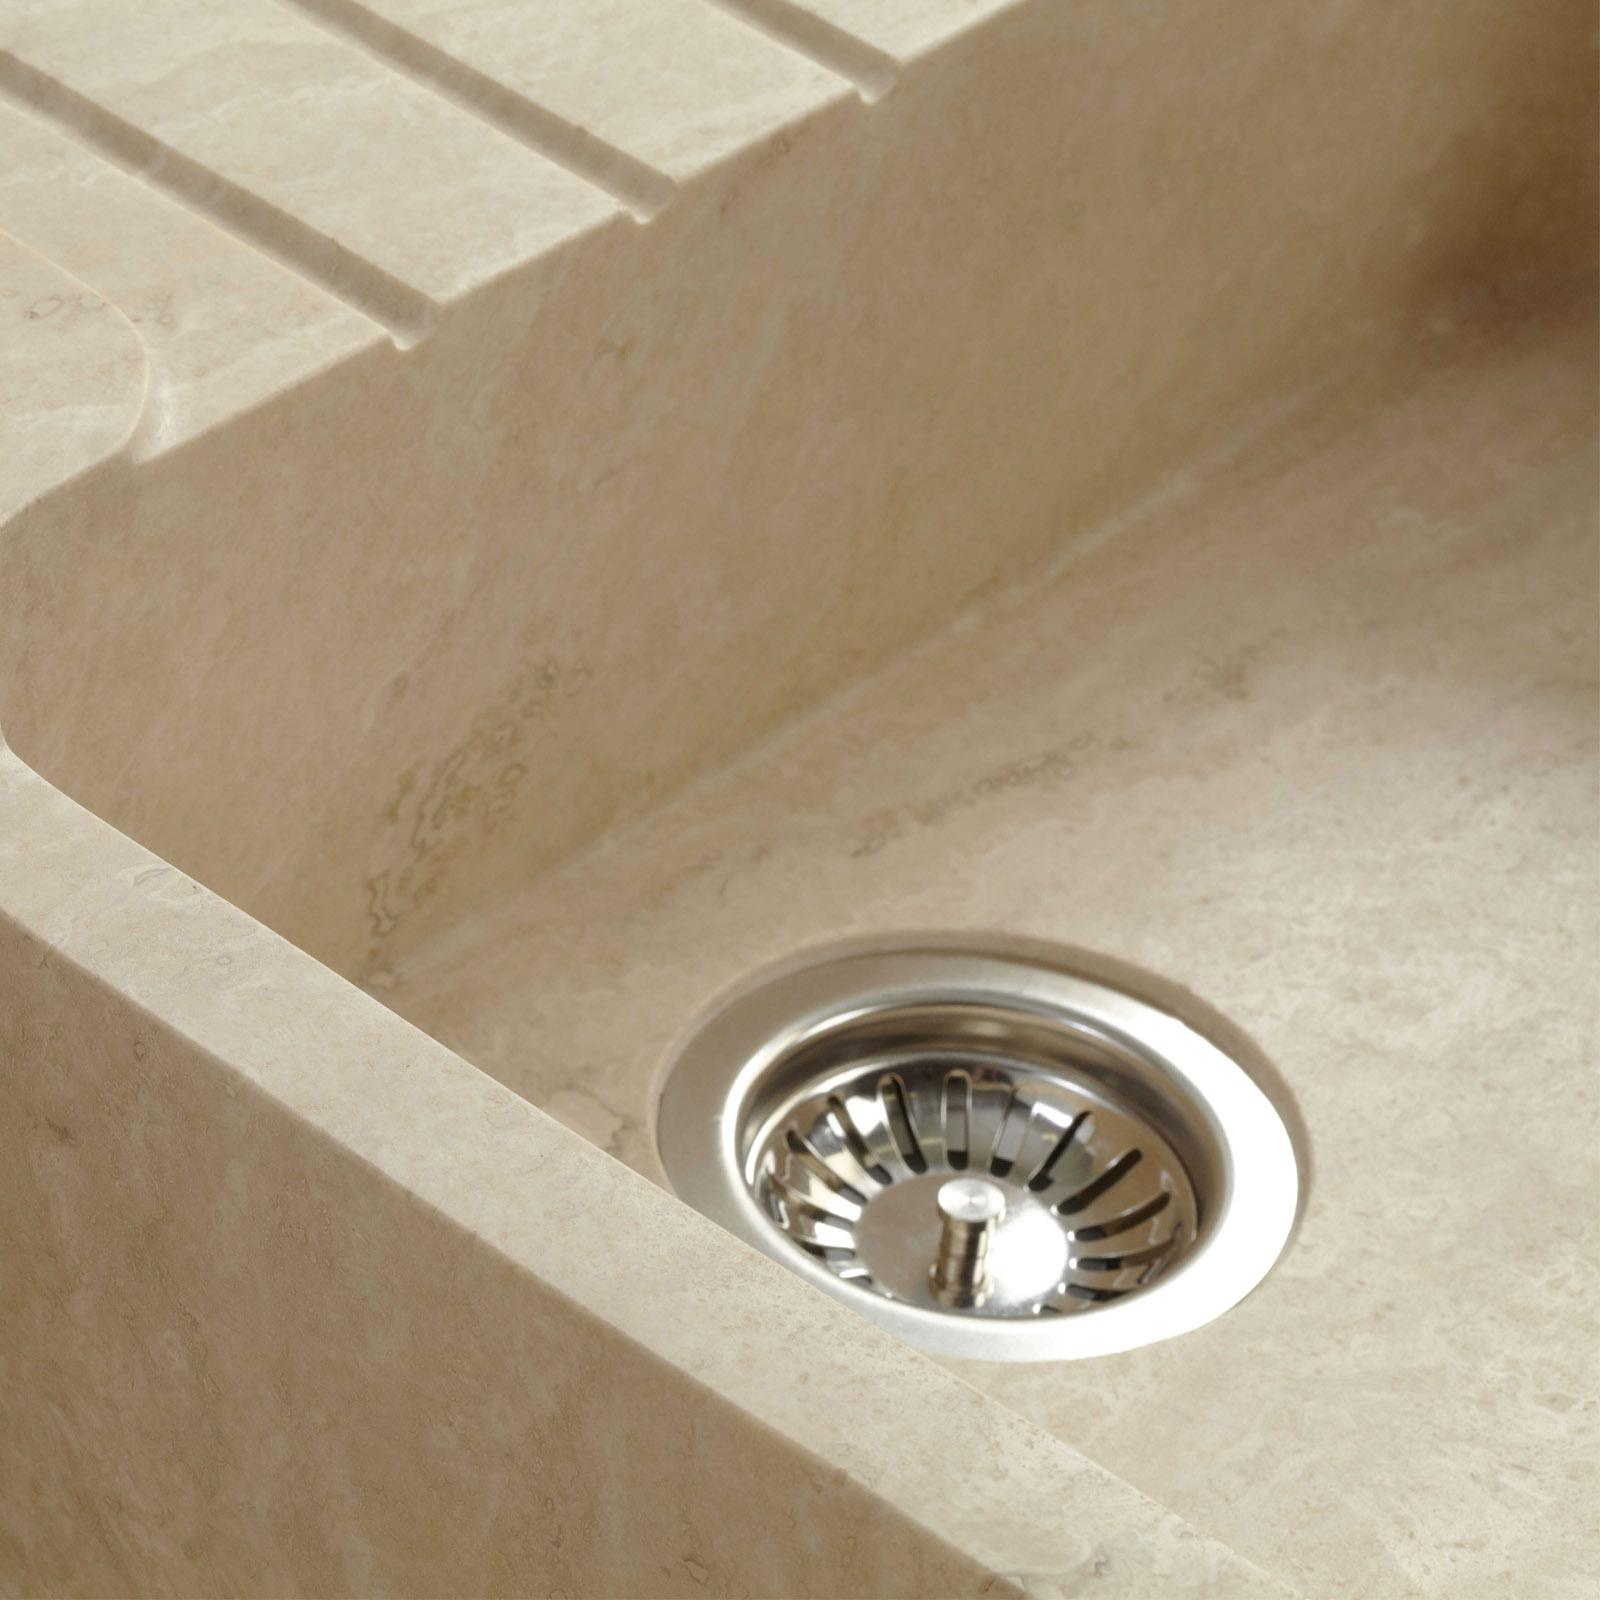 High-quality sink Charles II - one and a half bowl, travertine - ambience 2